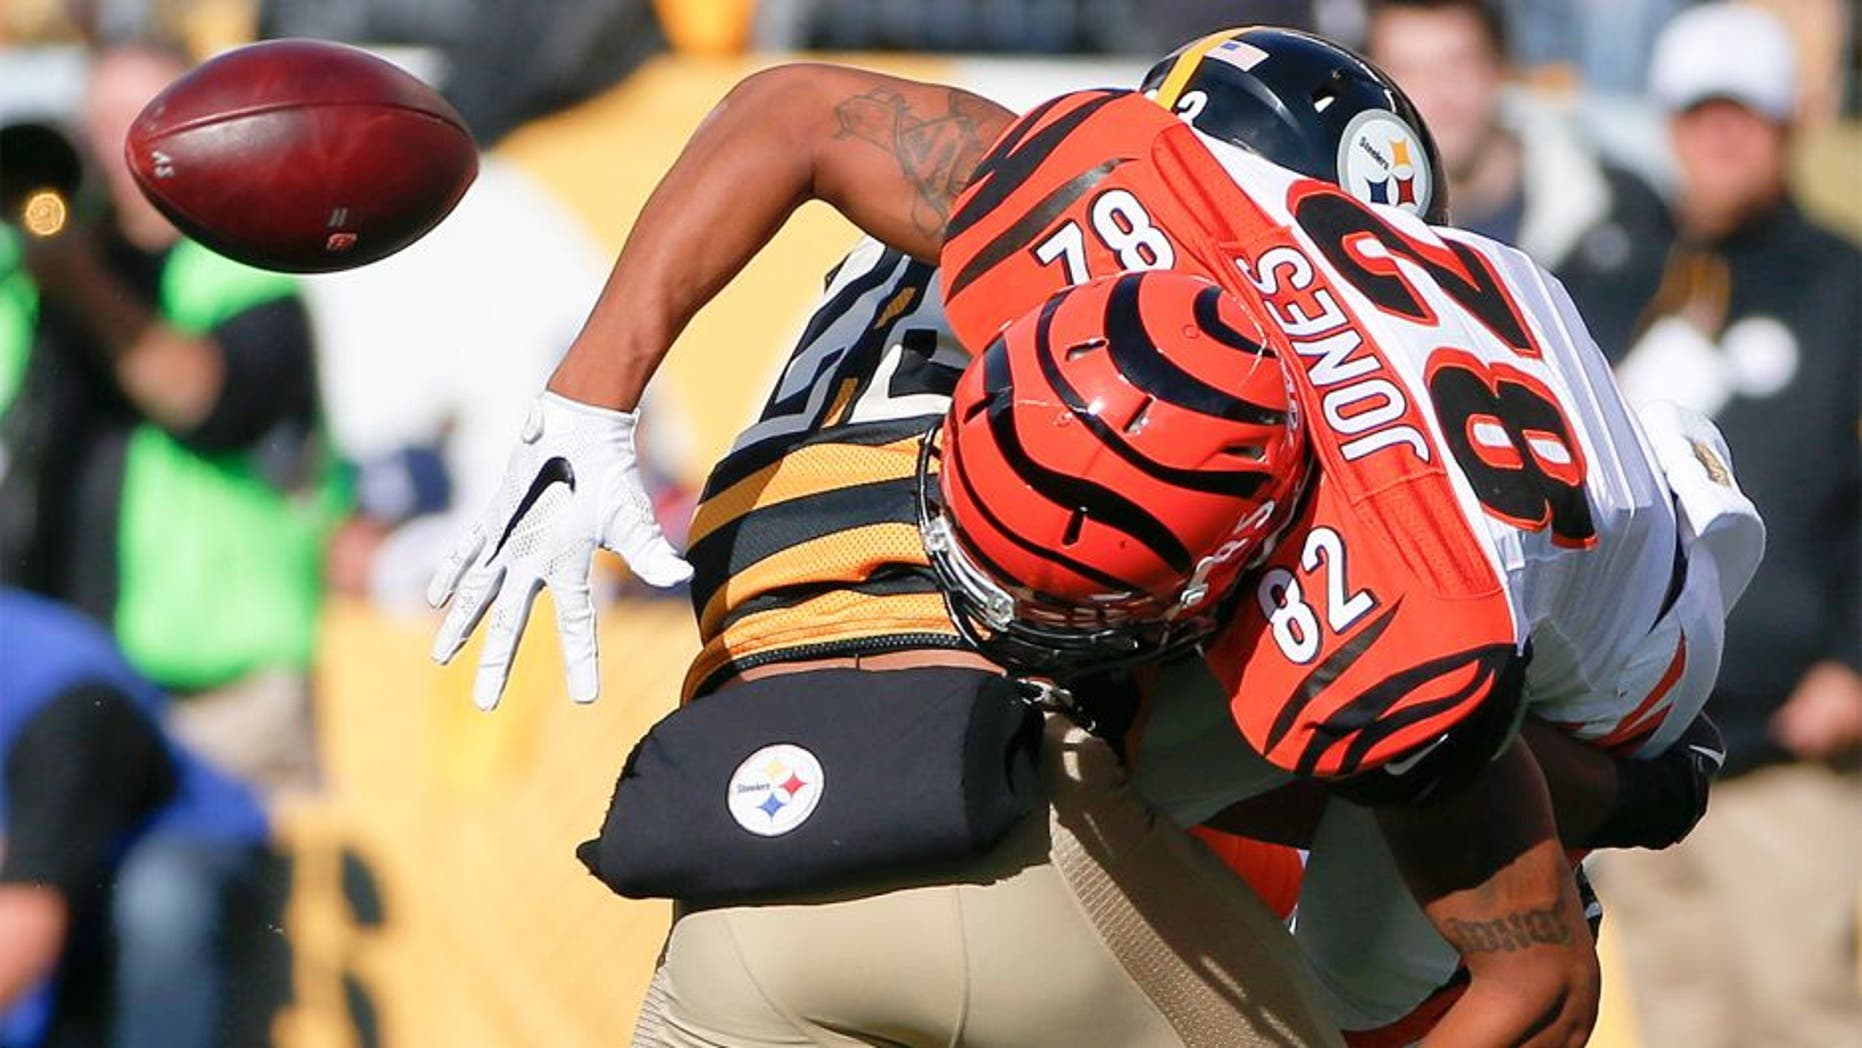 Pittsburgh Steelers free safety Mike Mitchell (23) breaks up a pass to Cincinnati Bengals wide receiver Marvin Jones (82) in the second quarter an NFL football game, Sunday, Nov. 1, 2015, in Pittsburgh. (AP Photo/Gene J. Puskar)